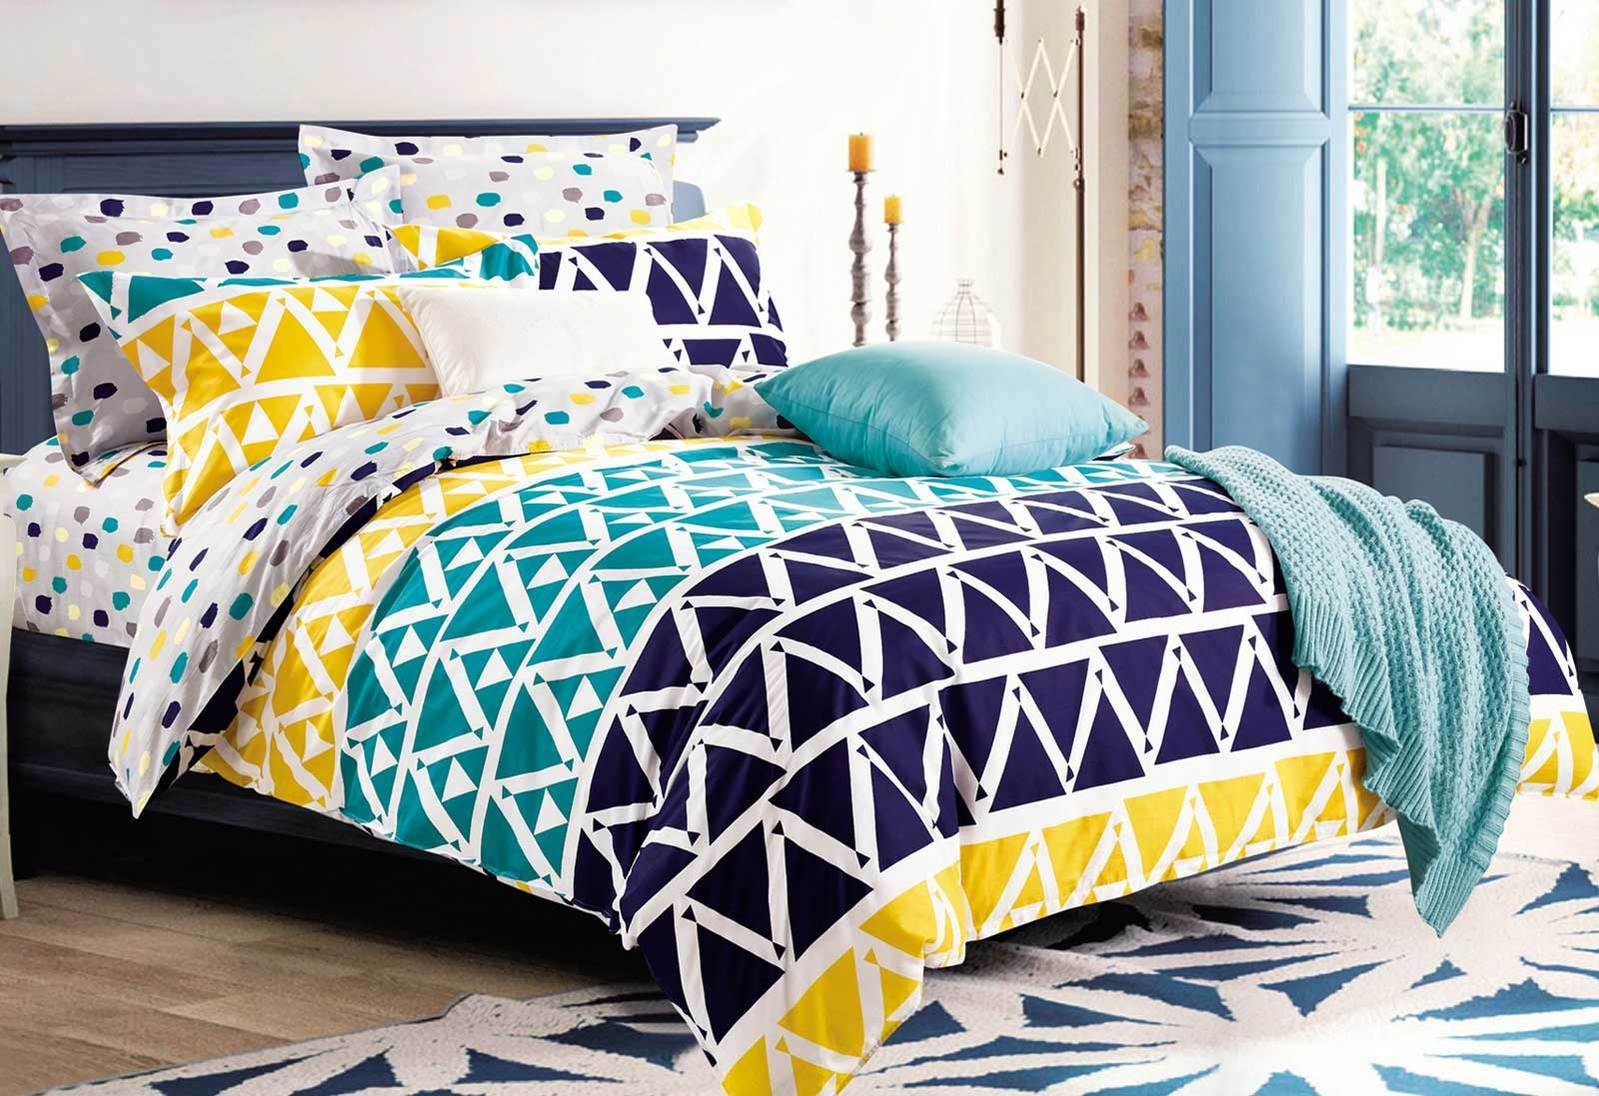 King Single Doona Cover Luxton Sunniva Cotton Quilt Cover Set Queen Or King